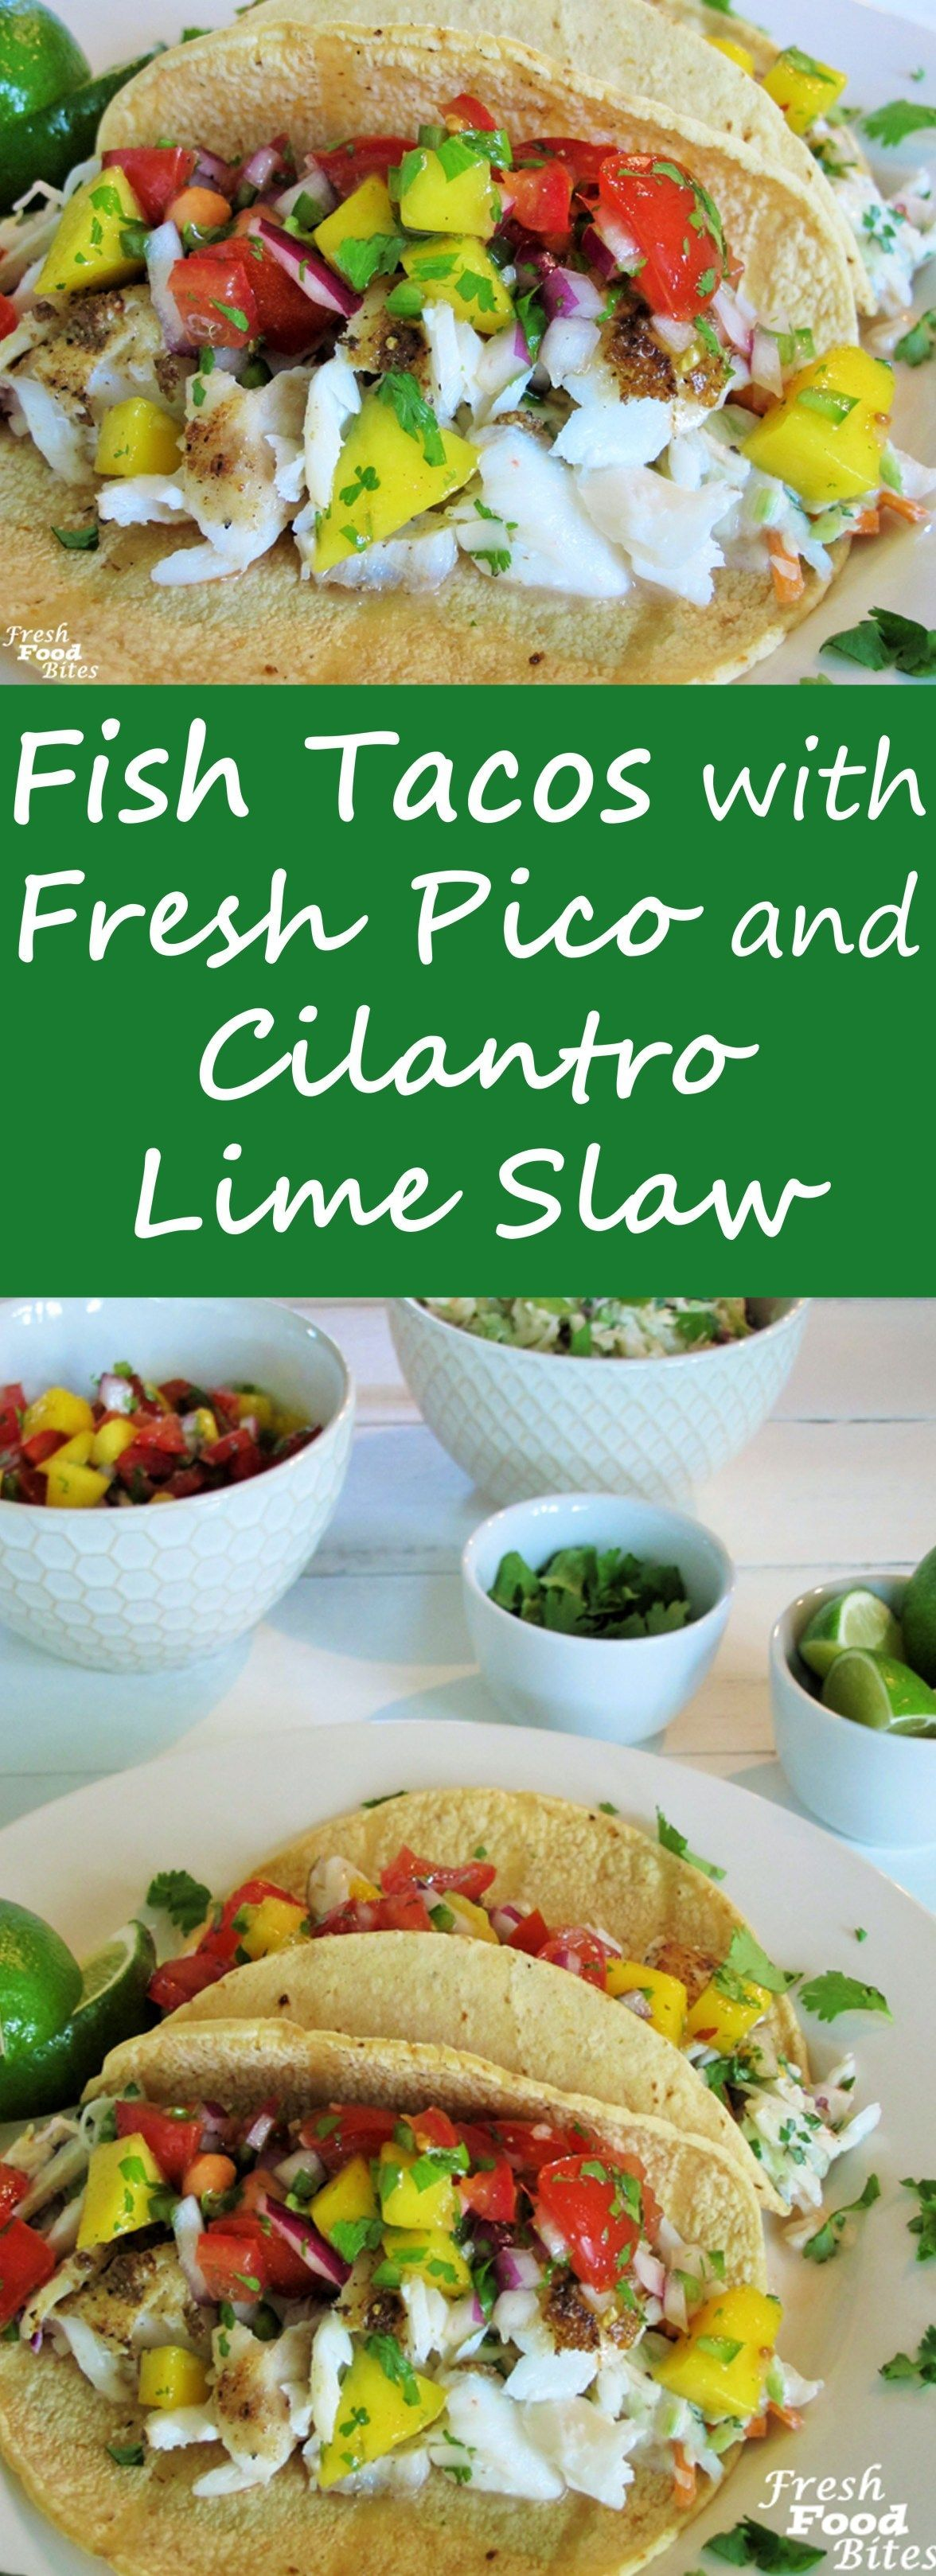 If you think eating fish tacos can only be done in a restaurant, try these Fish Tacos with Fresh Pico and Cilantro-Lime Slaw. They are fresh, healthy, delicious, and won't take you all day to make. See how easy it is to create this restaurant favorite at home. #cilantrolimeslaw If you think eating fish tacos can only be done in a restaurant, try these Fish Tacos with Fresh Pico and Cilantro-Lime Slaw. They are fresh, healthy, delicious, and won't take you all day to make. See how easy it is to c #cilantrolimeslaw